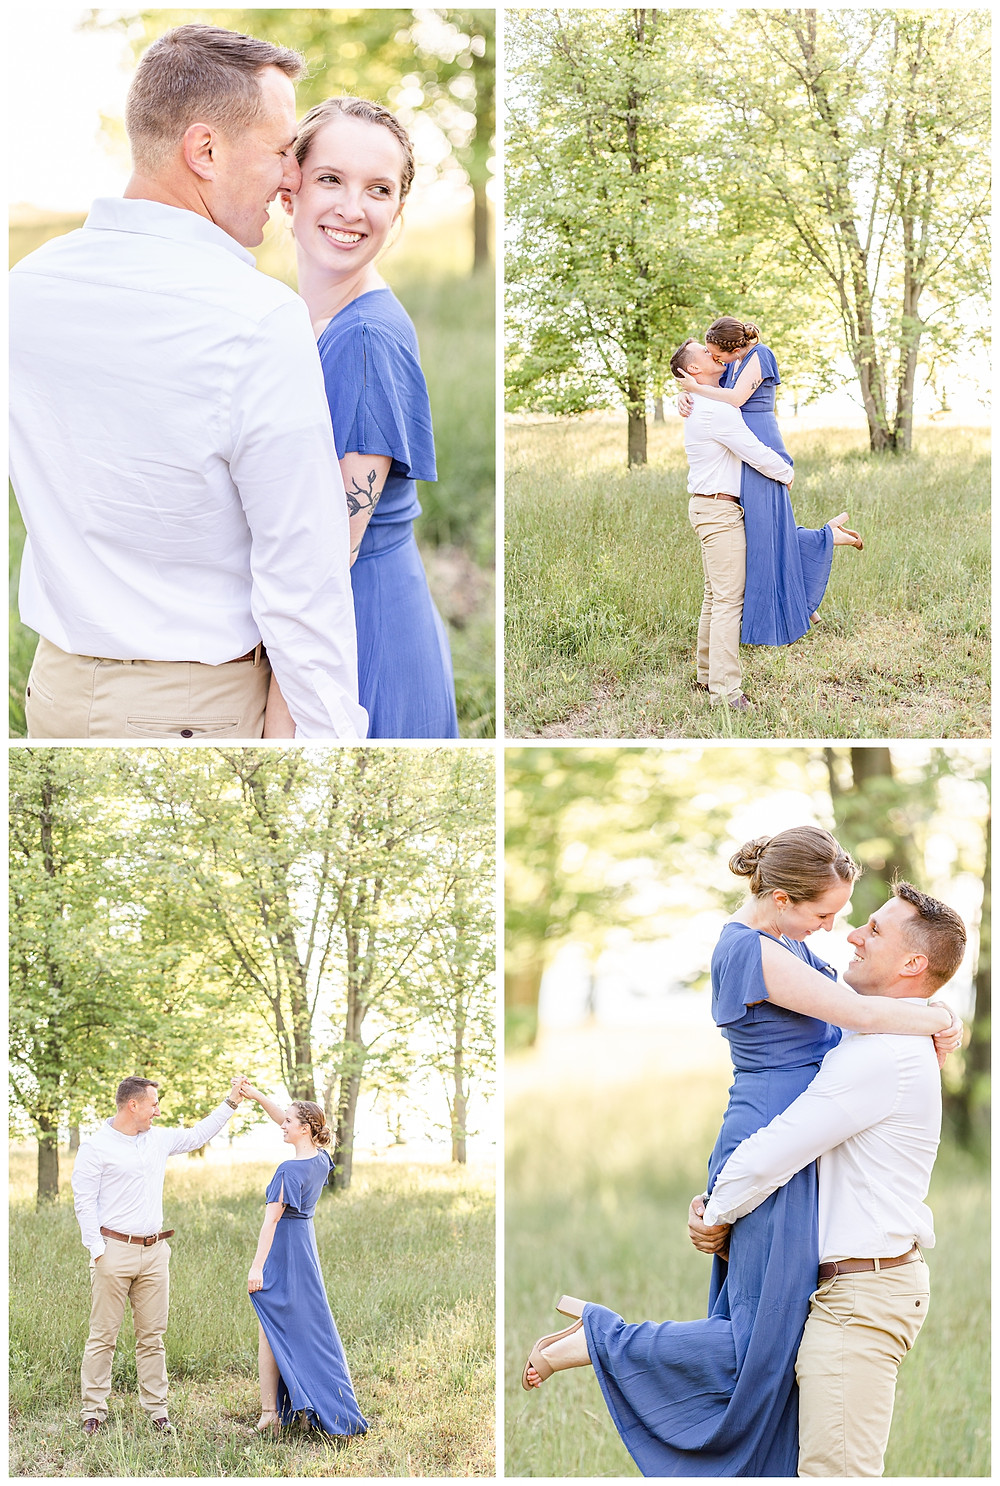 Josh and Andrea wedding photography husband and wife photographer team michigan pictures south haven engagement pictures session fields and woods photo shoot fiance kissing lift dancing